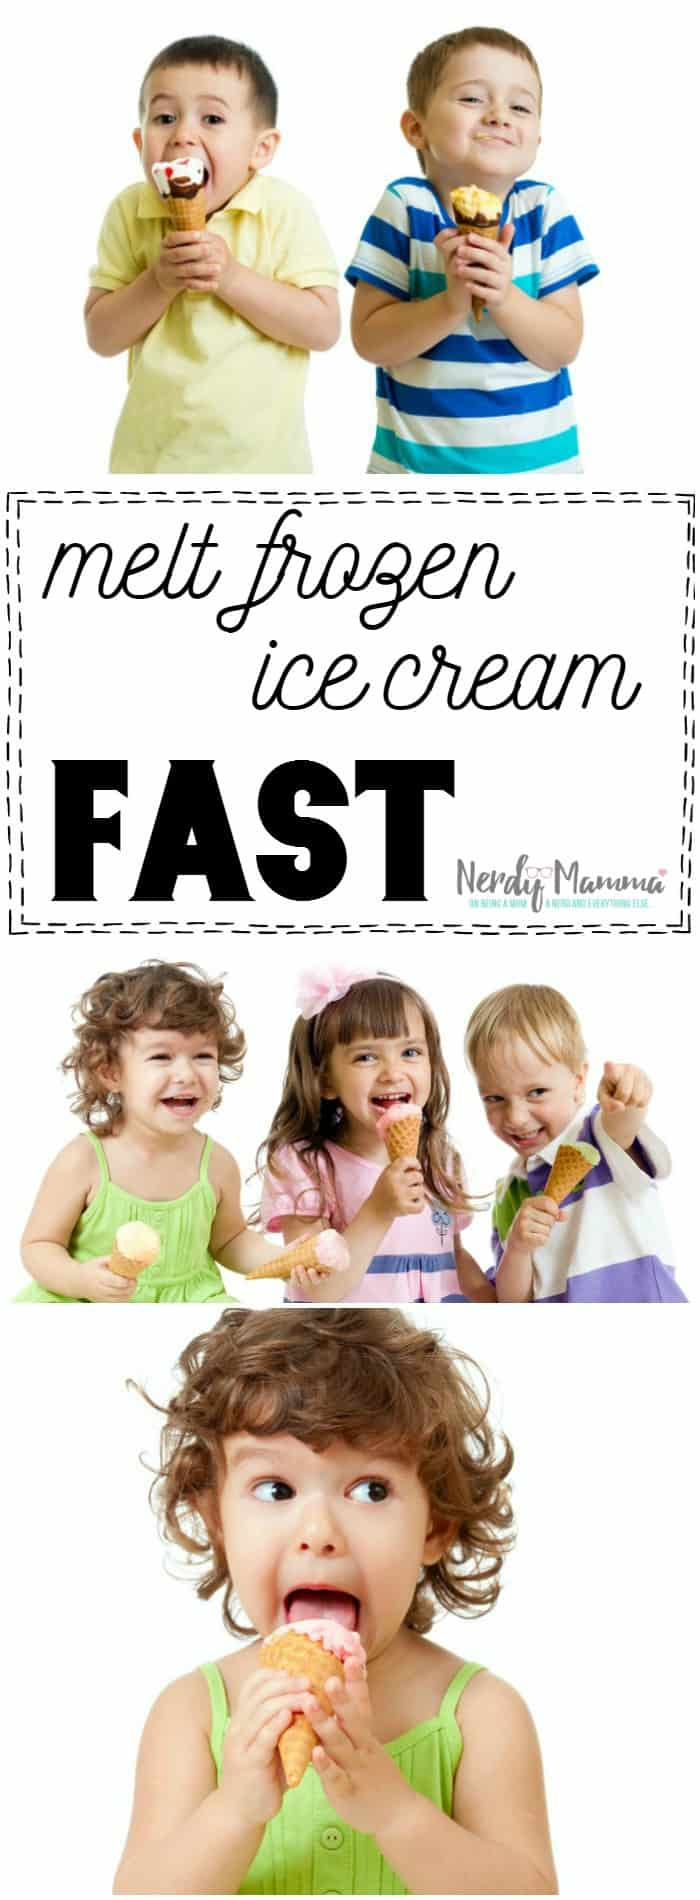 Now this is pure genius. I didn't know they made something like this. Now my kids won't yell and cry that I'm not getting their ice cream fast enough! Ha!